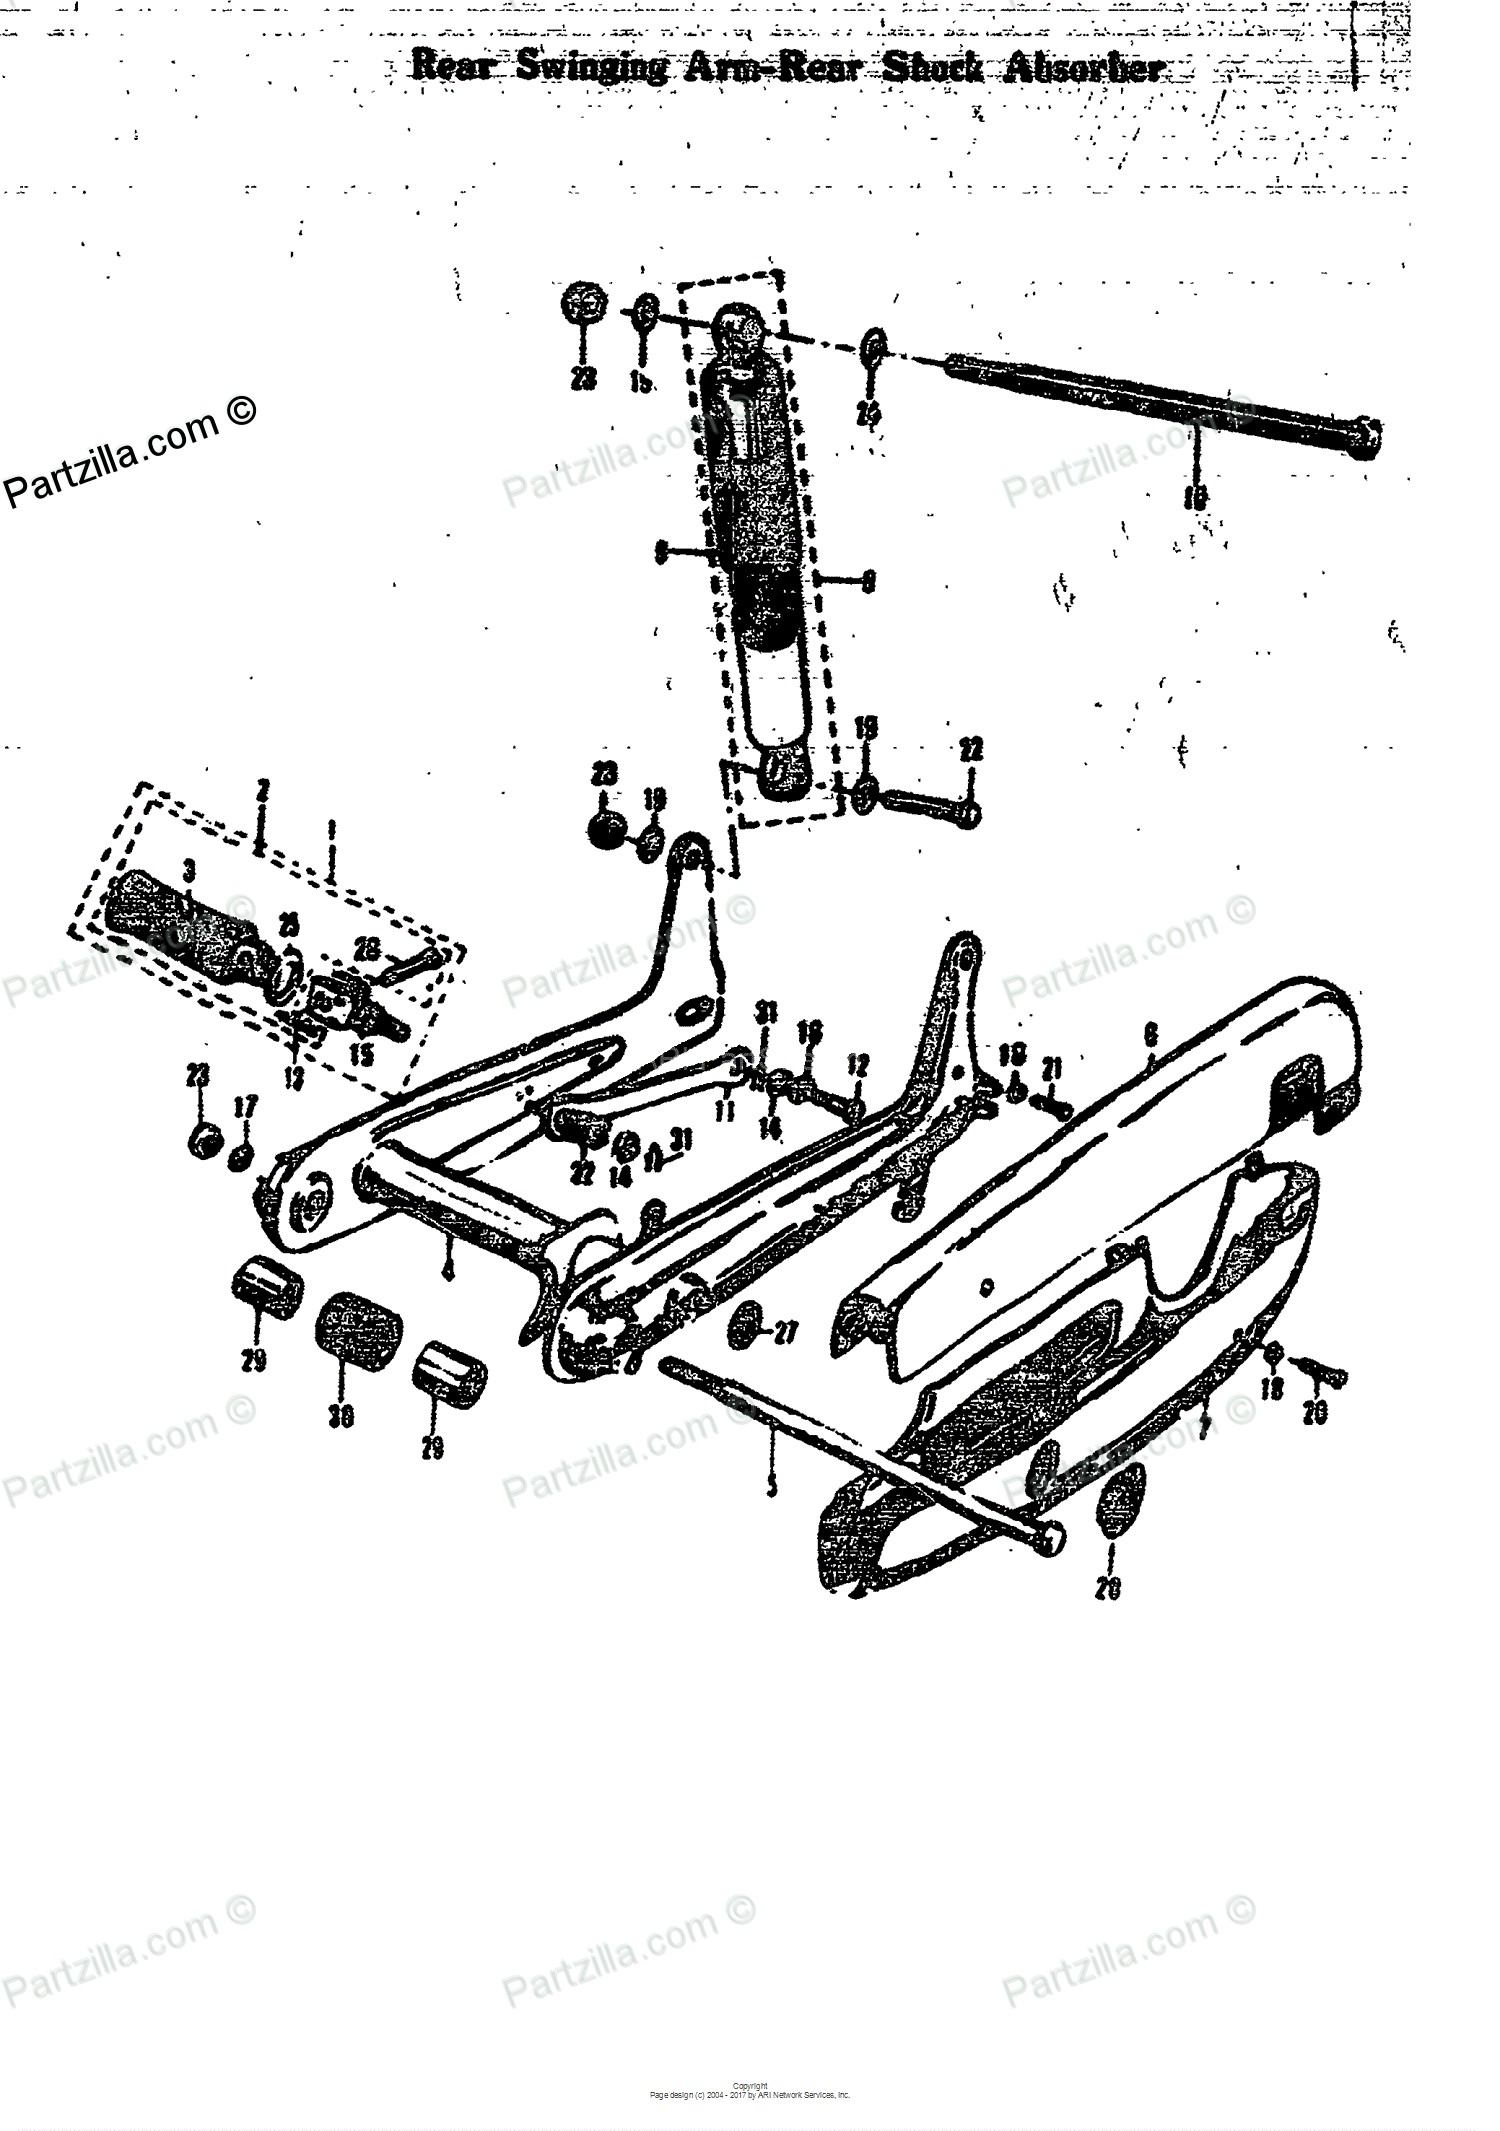 car shock absorber diagram suzuki motorcycle 1968 oem